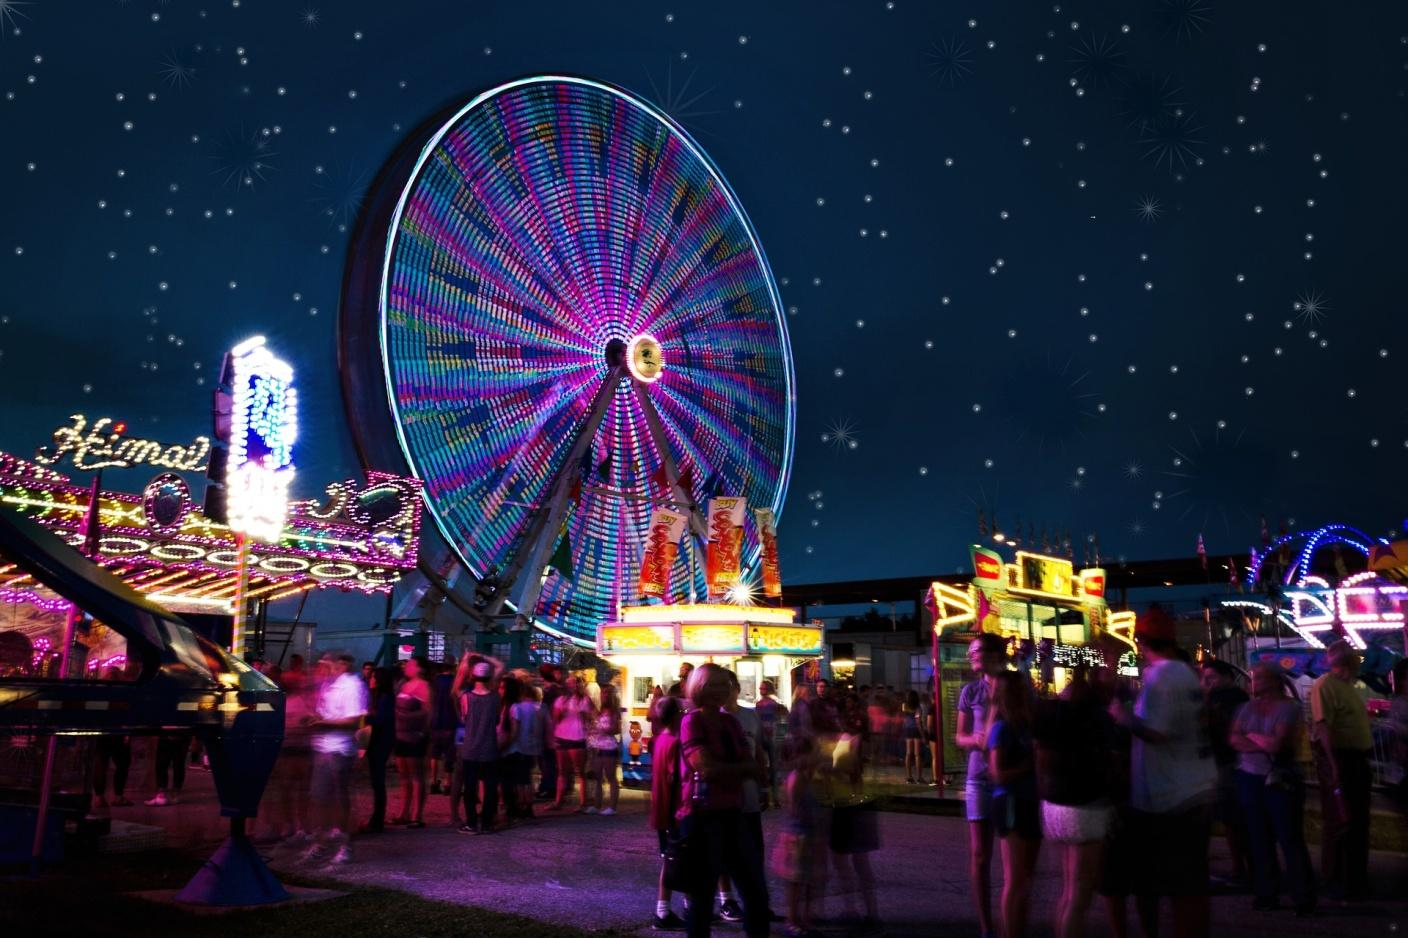 C:\Users\Admin\Downloads\carnival-rides-2648047_1920.jpg